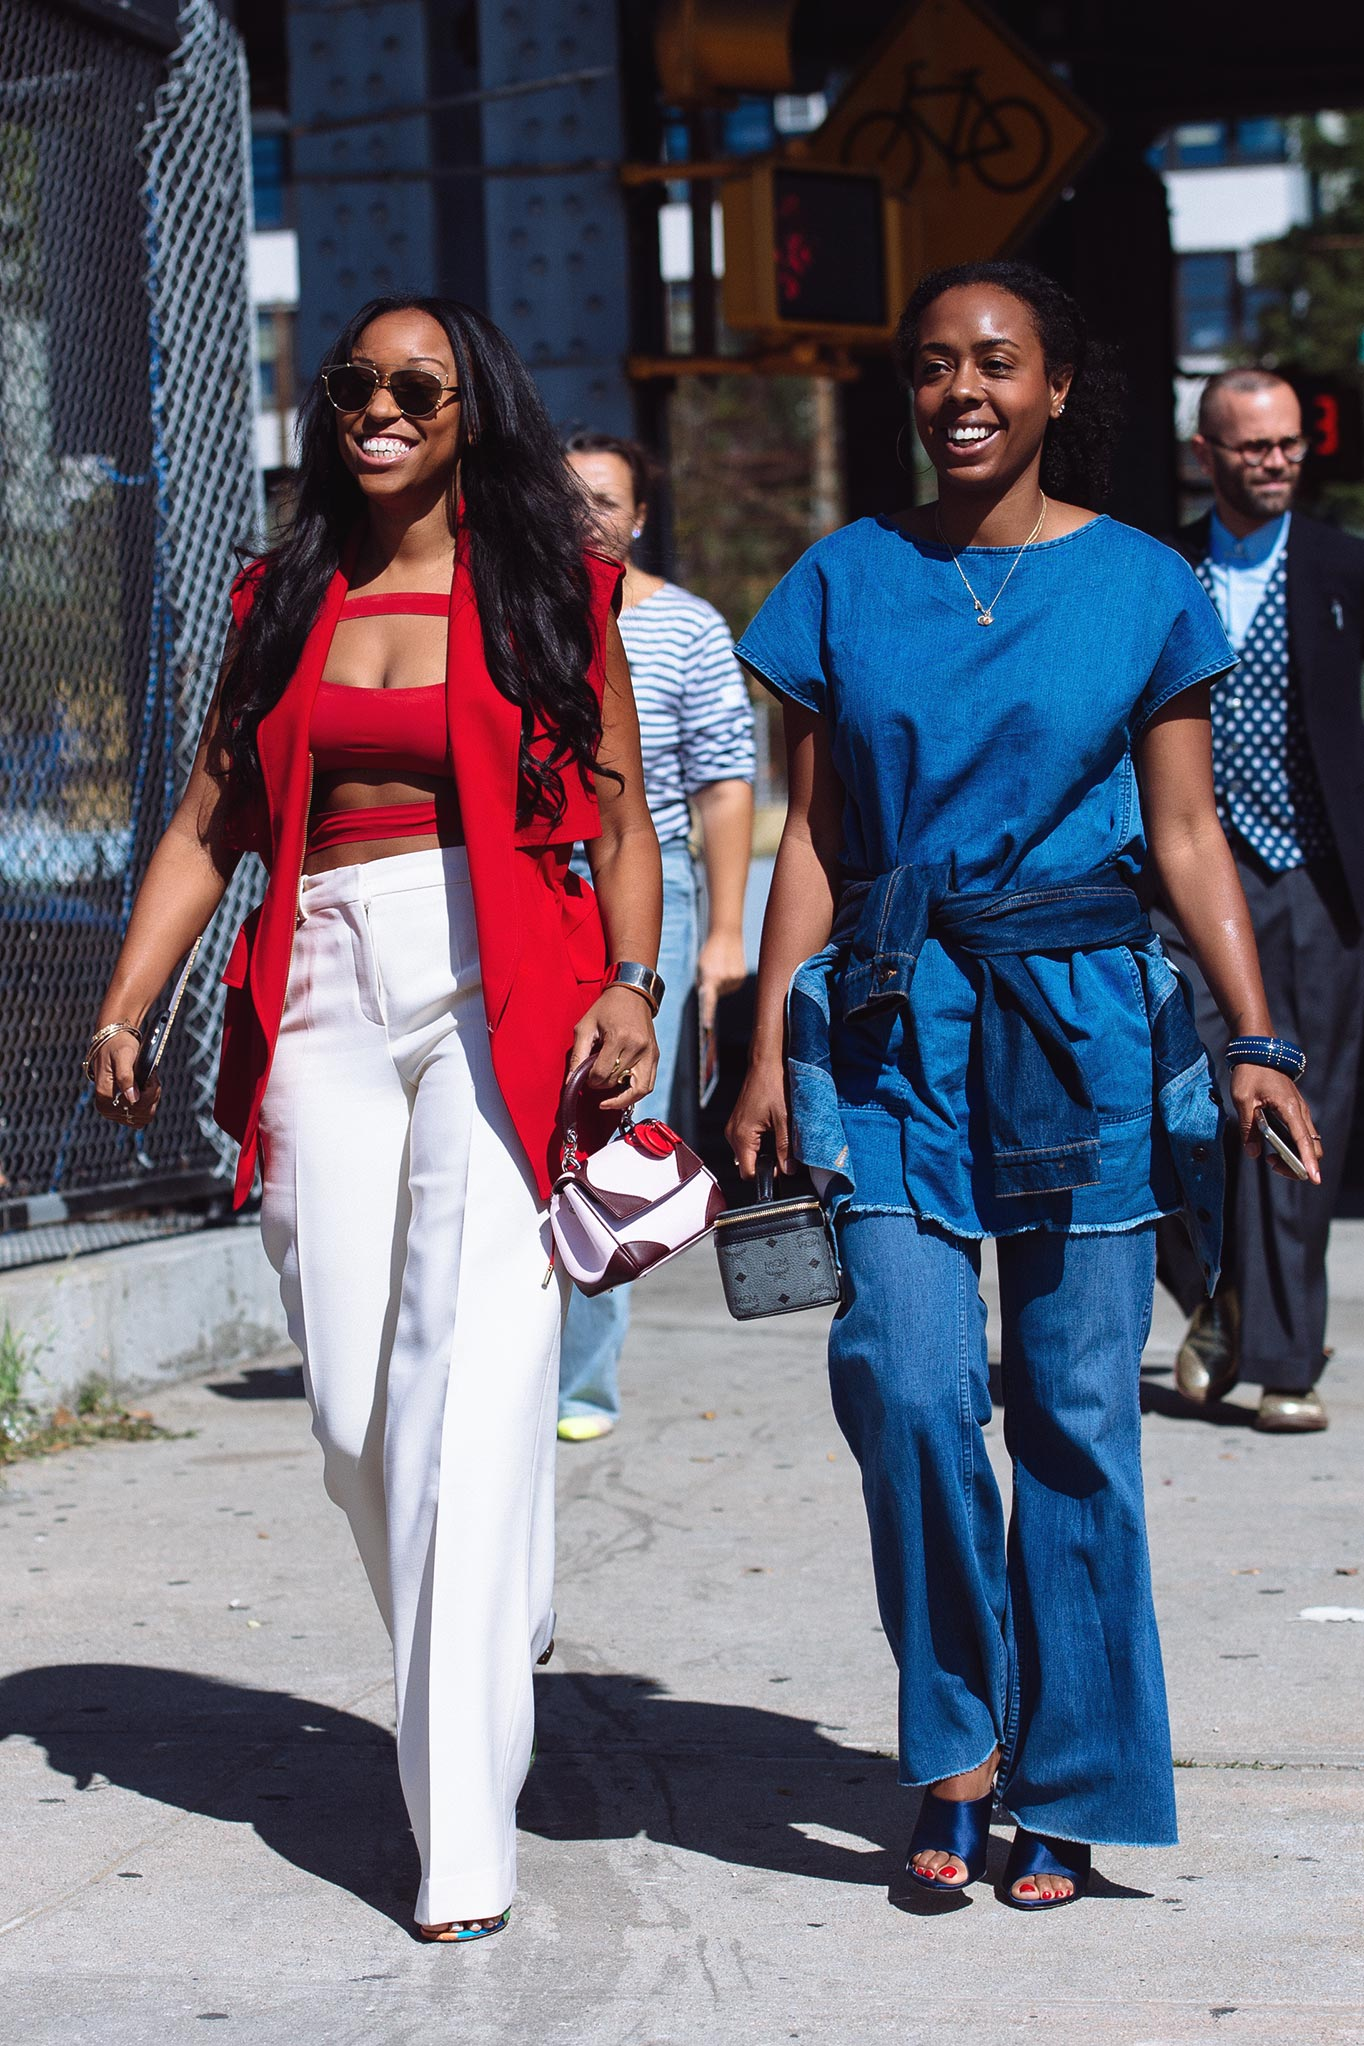 Shiona Turini at New York Fashion Week